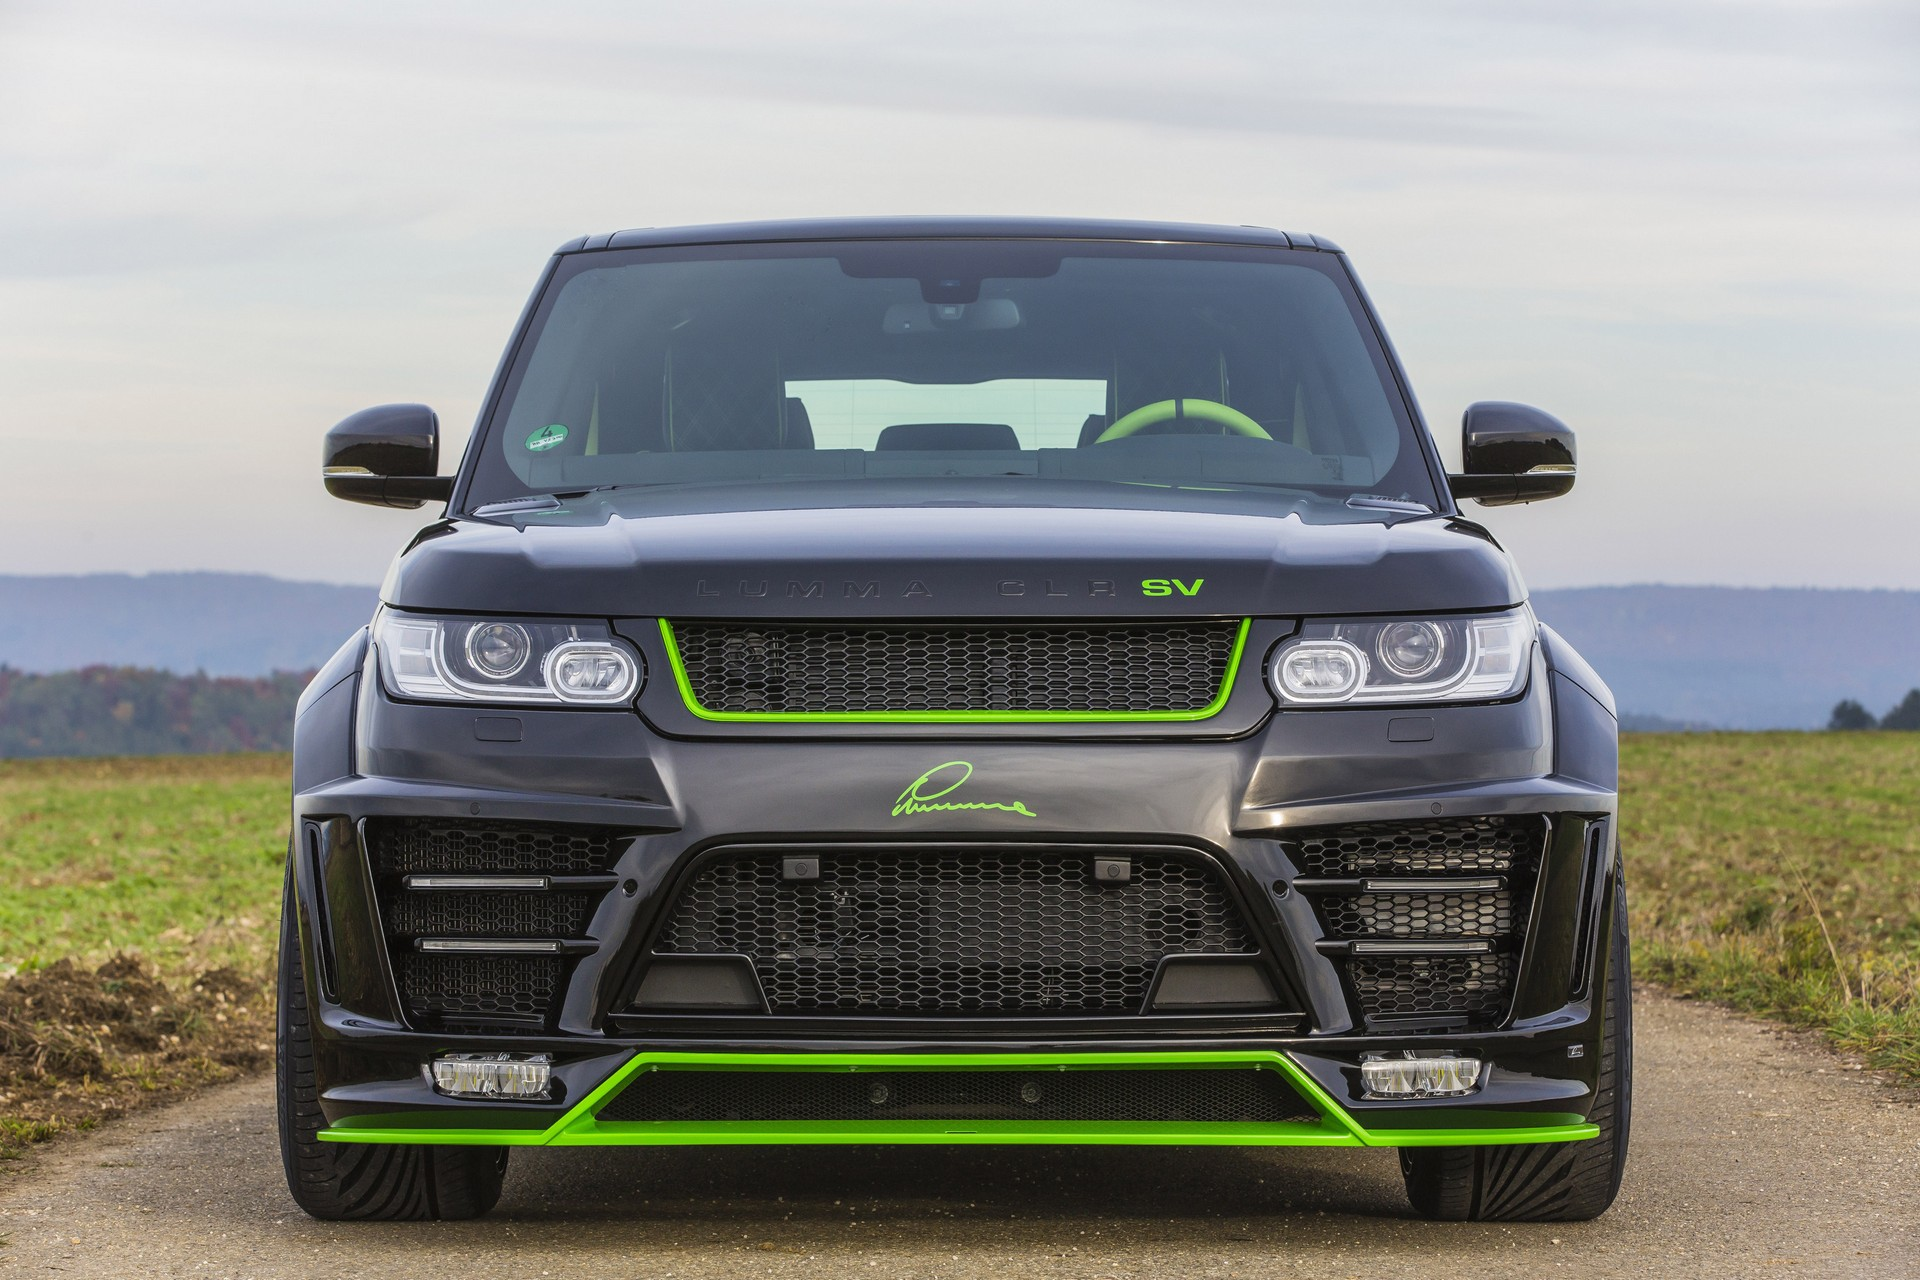 Lumma Clr Sv Body Styling Kit For The Range Rover Sport